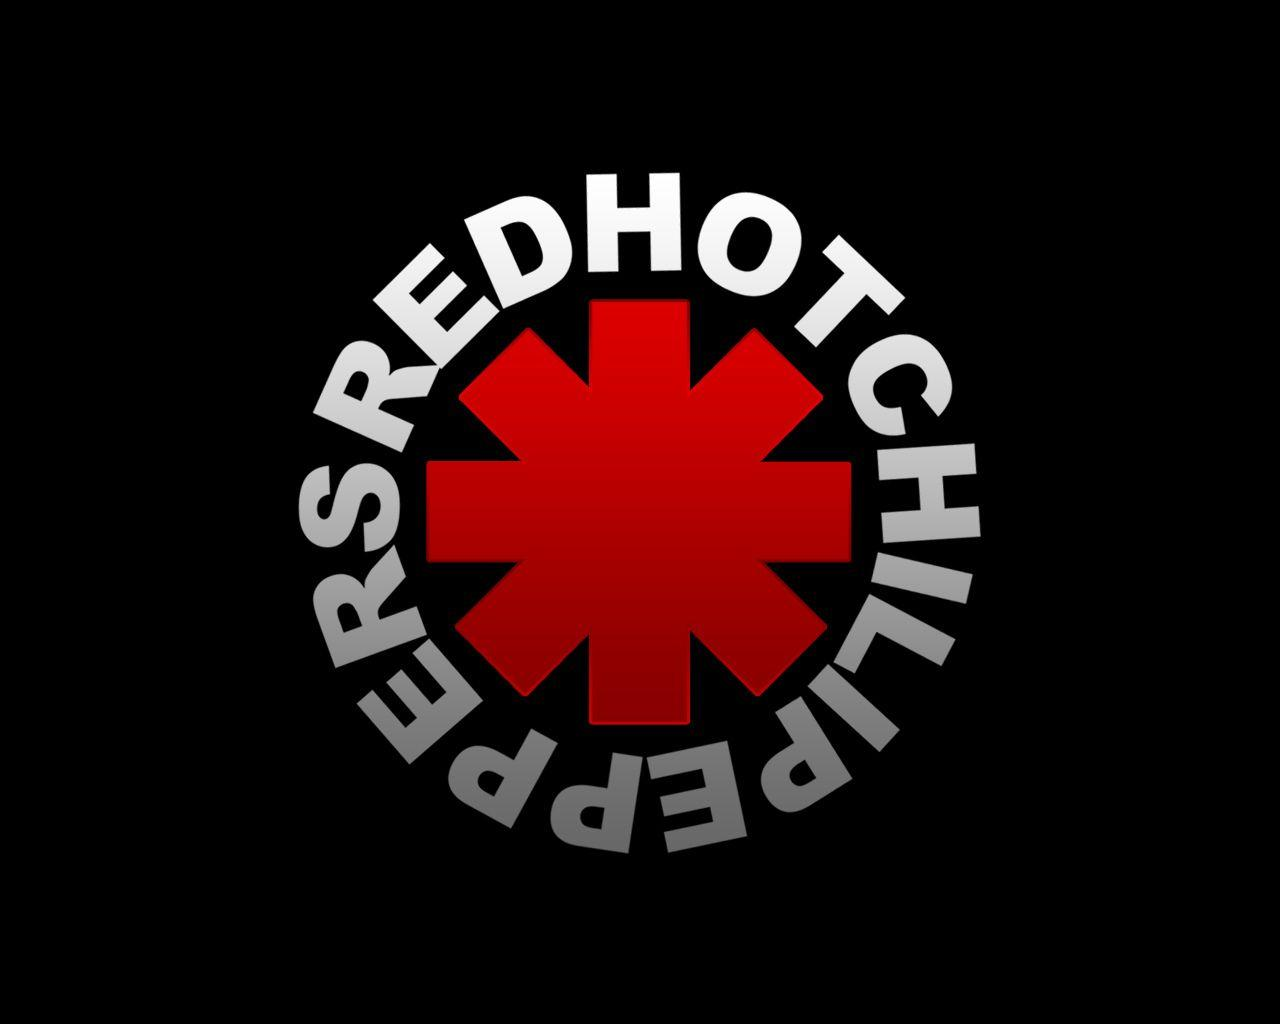 Red Hot Chili Peppers Wallpapers High Quality | Download Free |Hot Red Wallpaper